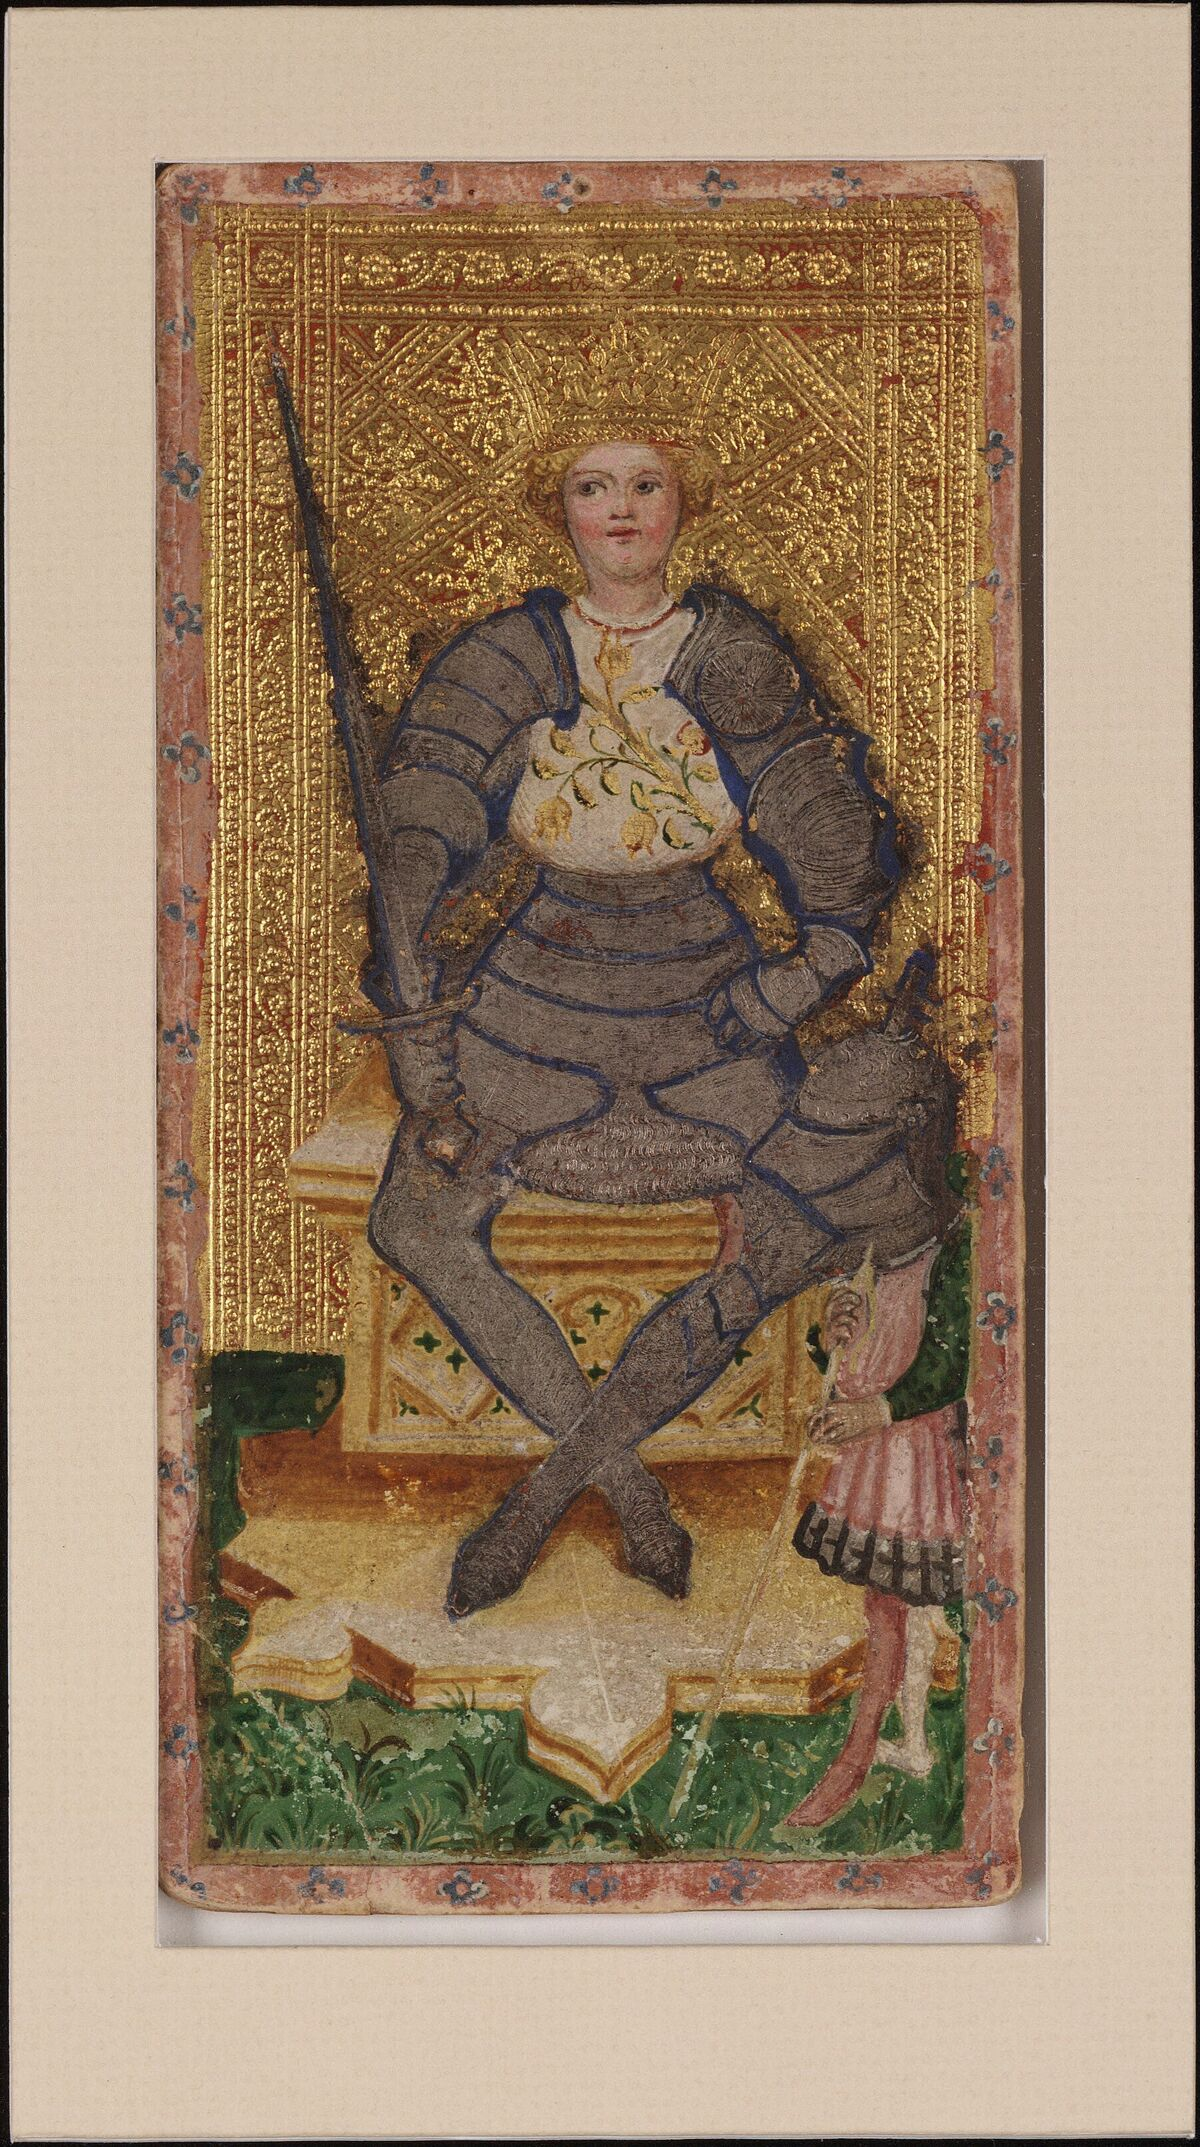 Bembo Bonifacio, The King of Swords, 1428-1447. Visconti Tarot from the Cary Collection of Playing Cards. Courtesy of the Beinecke Rare Book & Manuscript Library at Yale University.